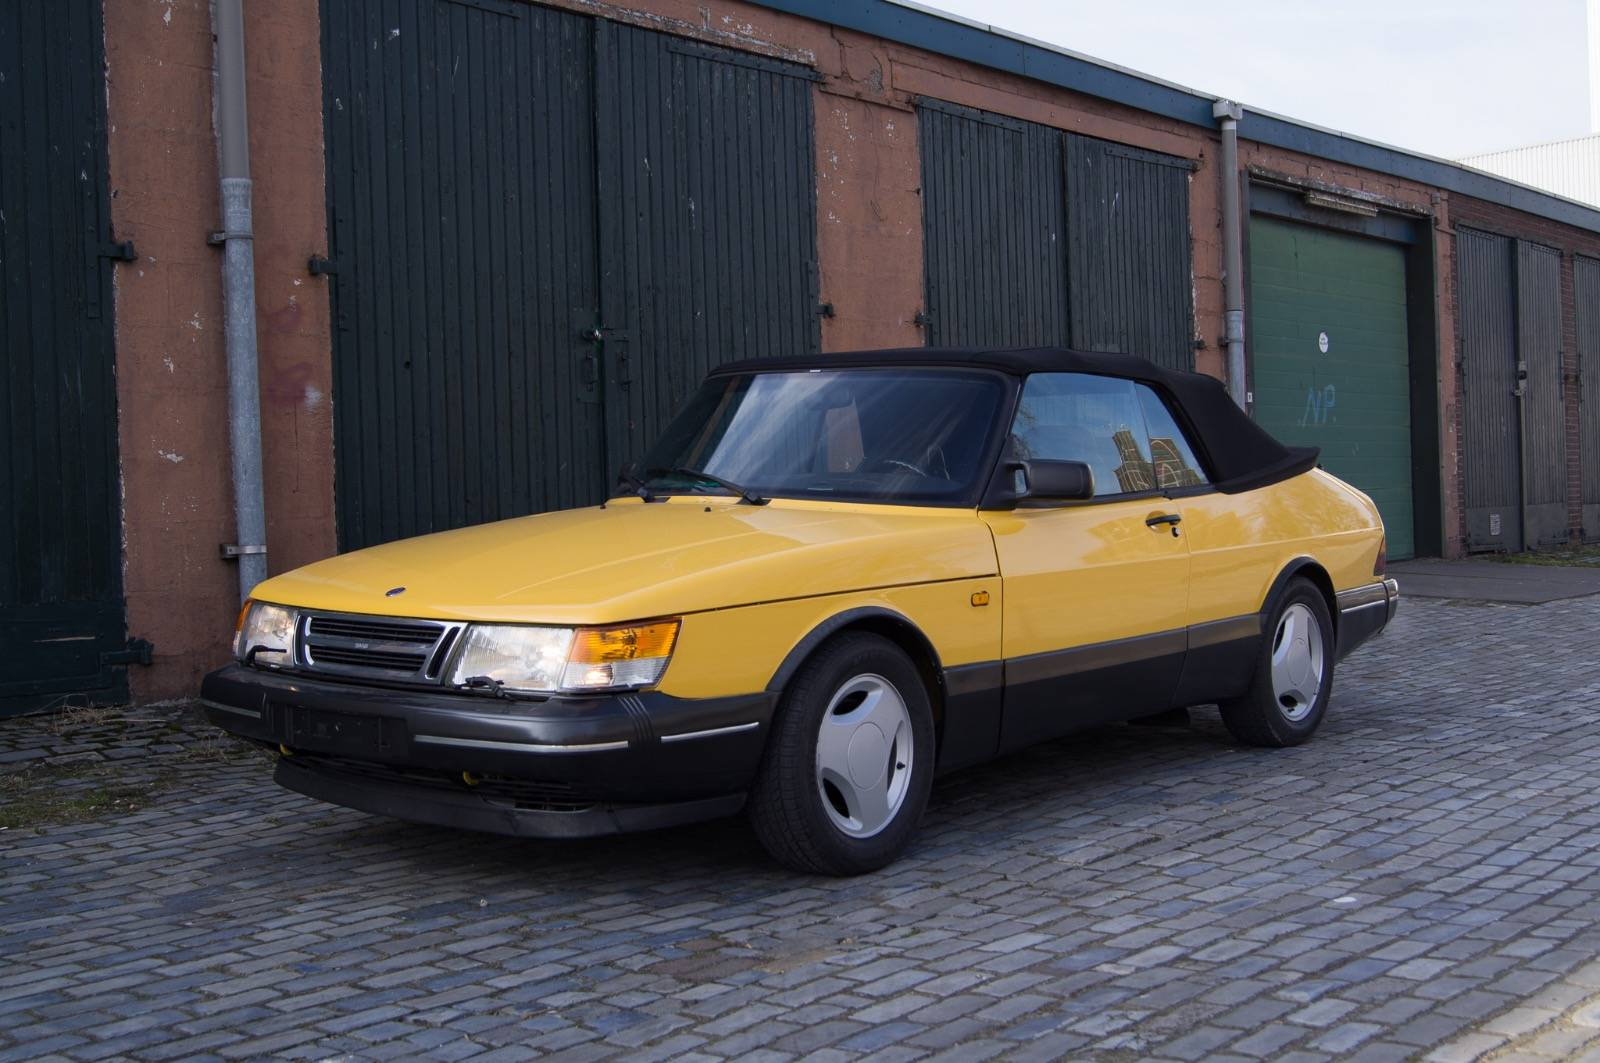 For Sale: Saab 900 SE Monte Carlo (1991) offered for GBP 30,816